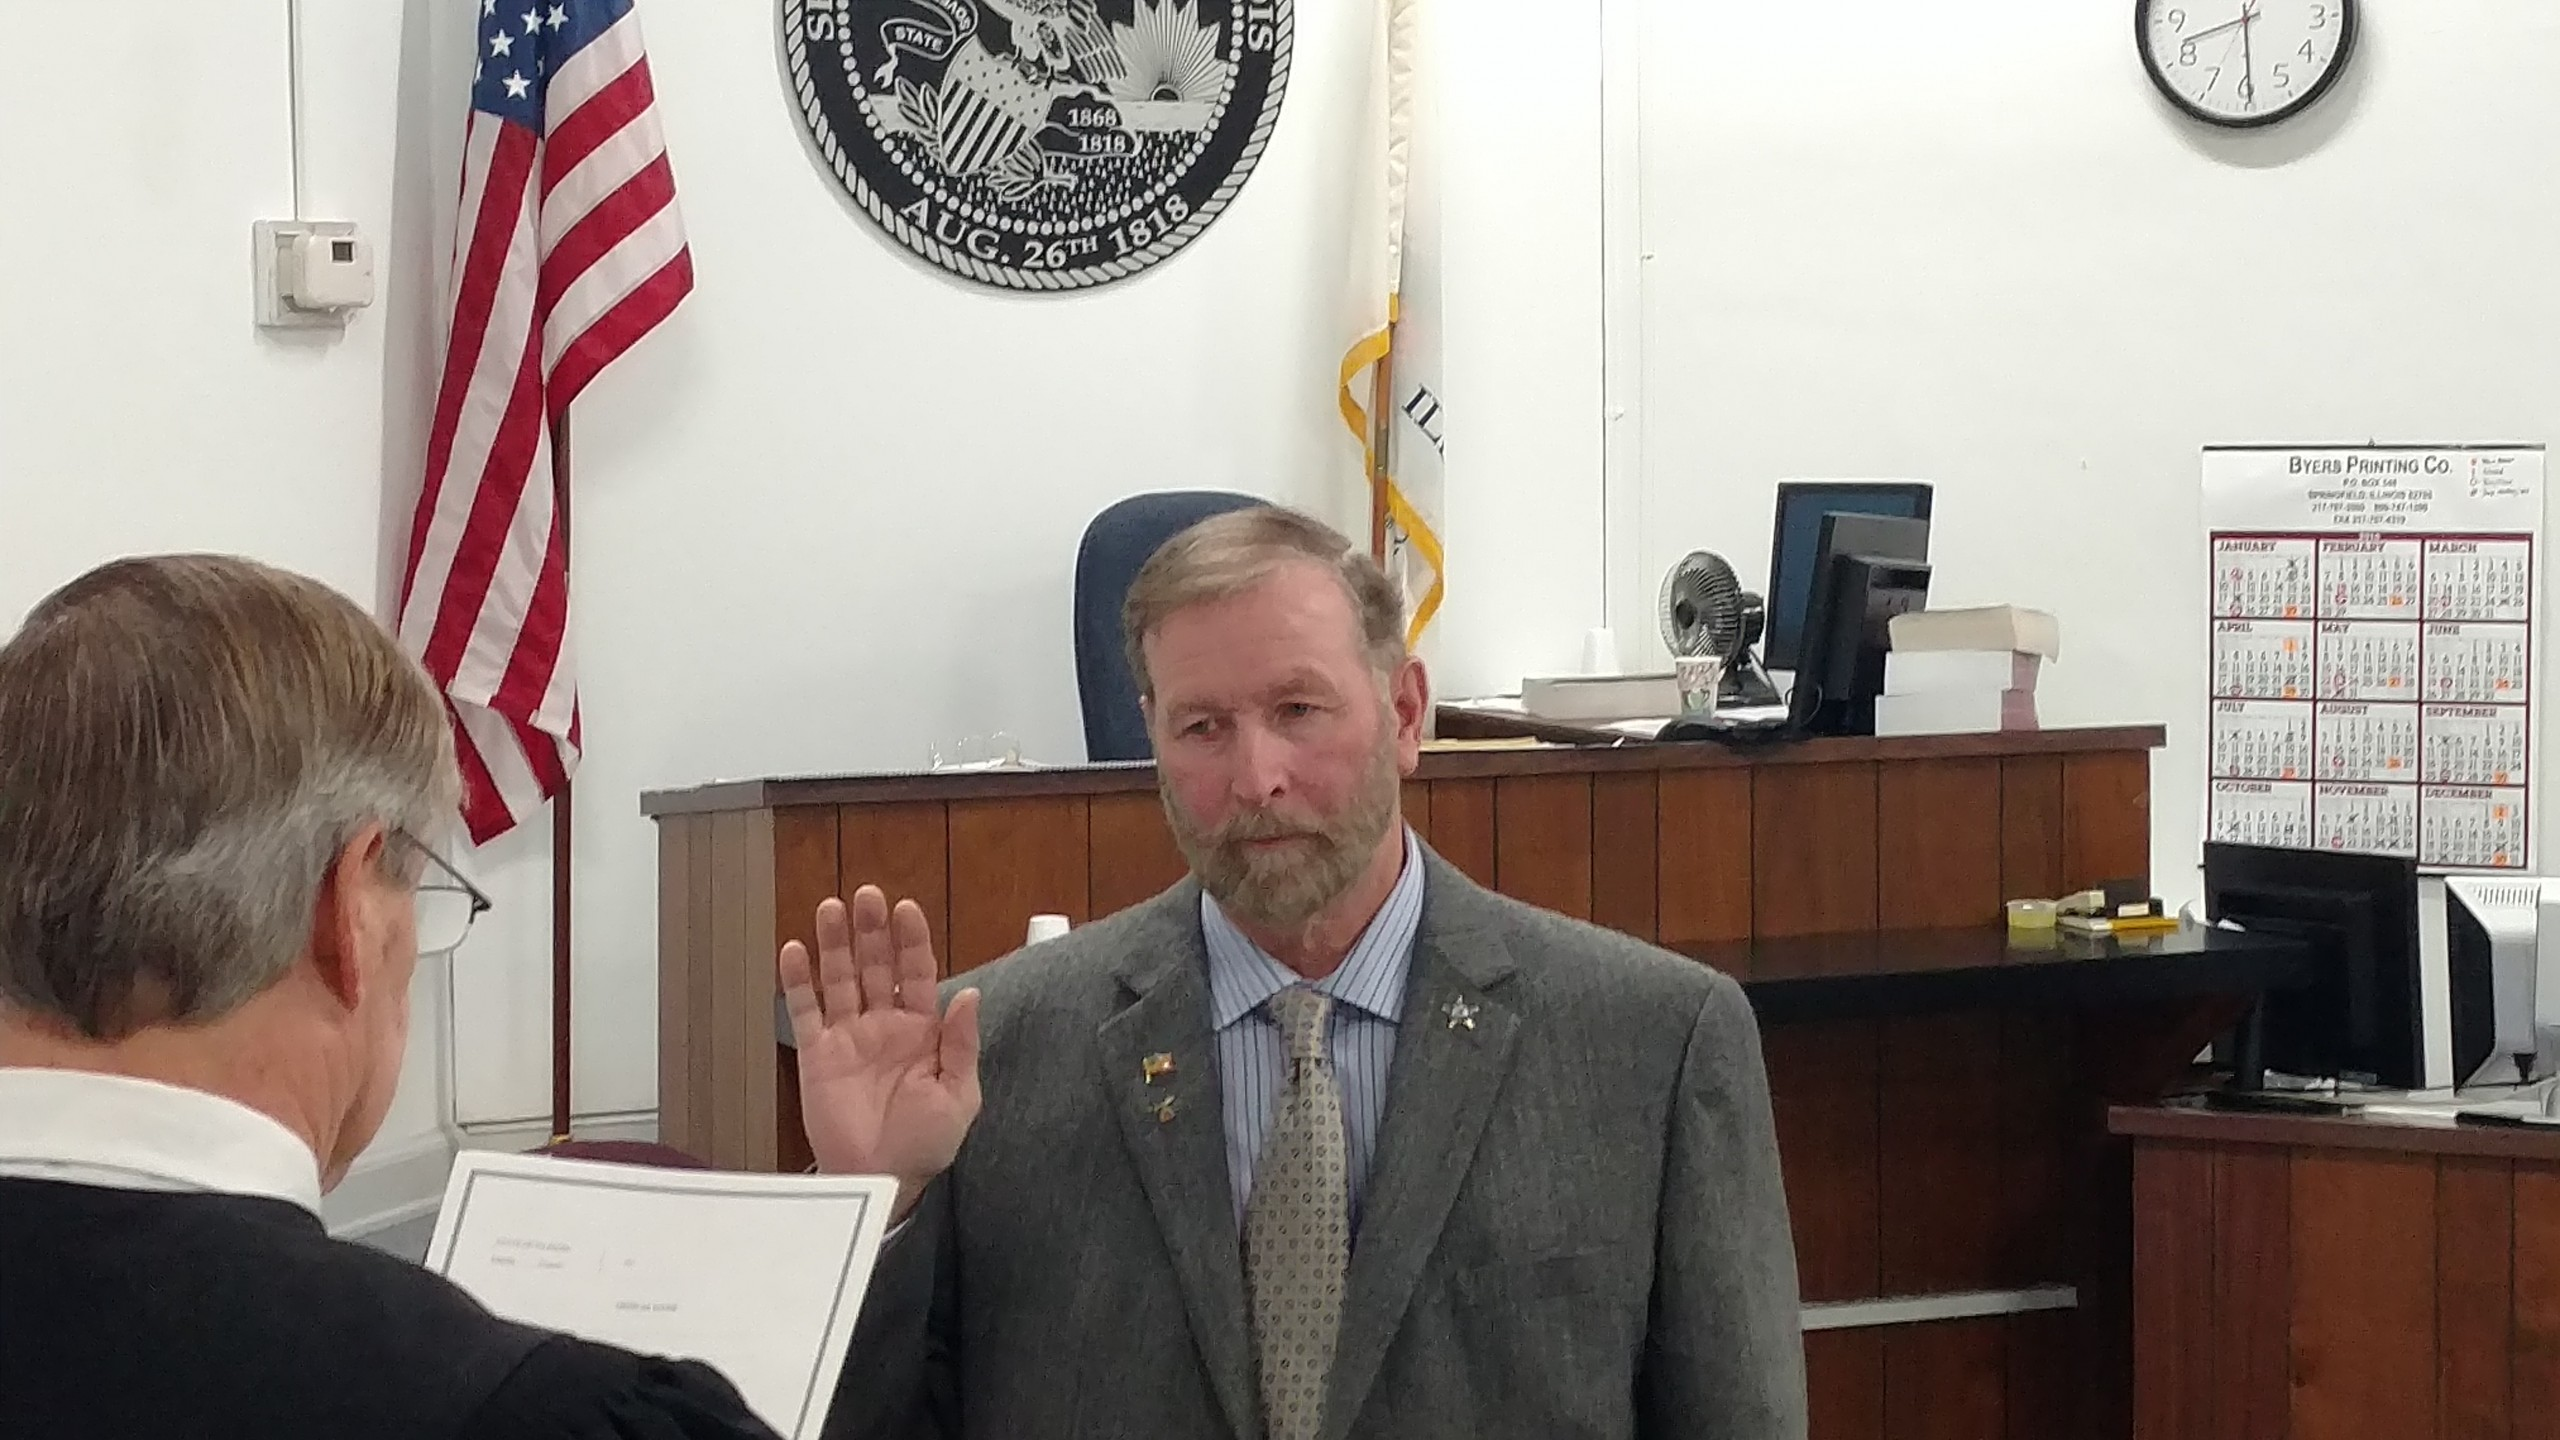 Bruce Bowen sworn in for 5th term as Fayette County Coroner